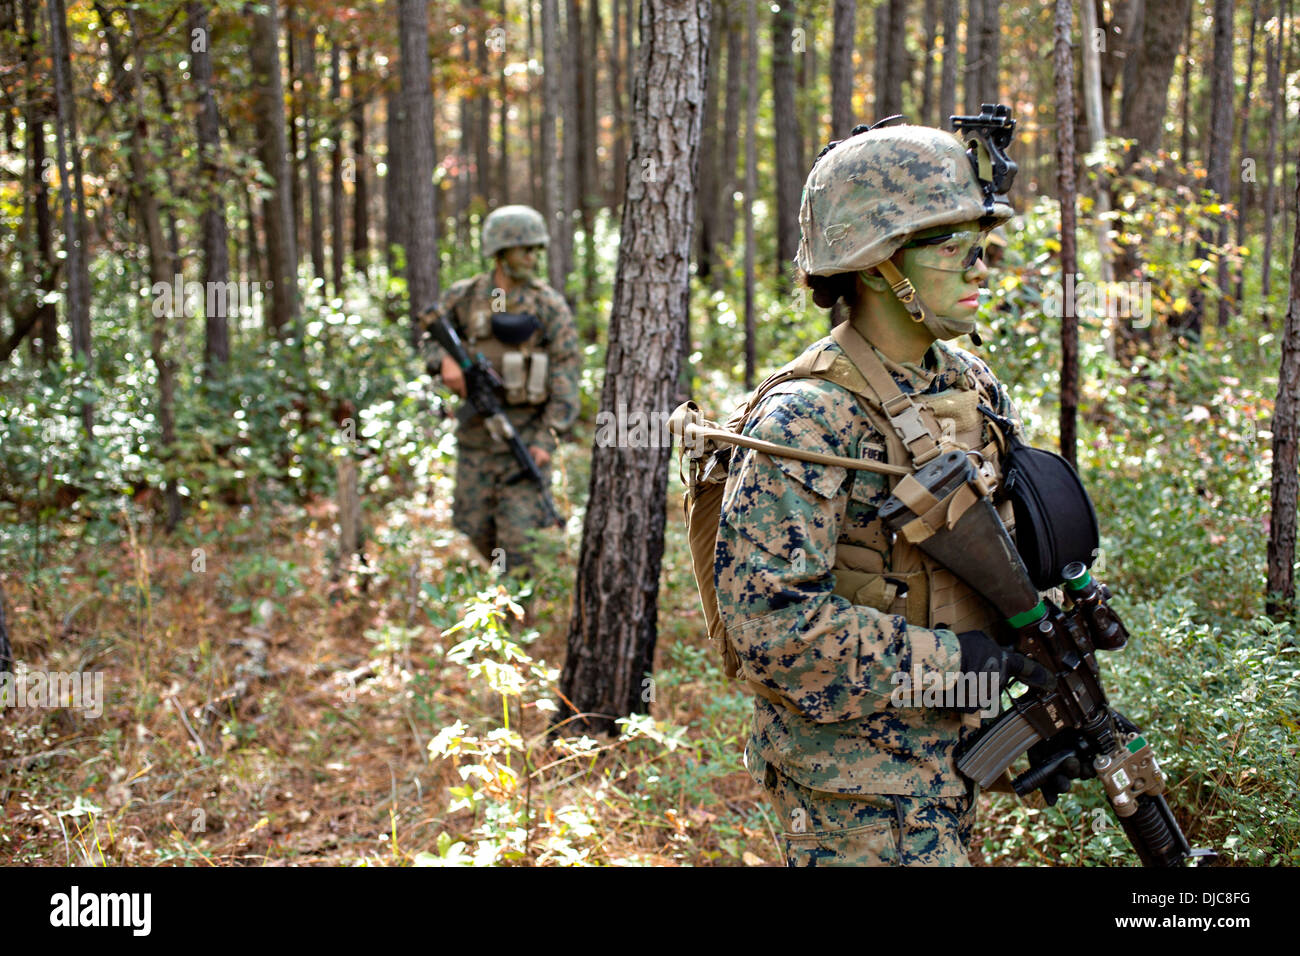 Infantry East Stock Photos & Infantry East Stock Images - Alamy